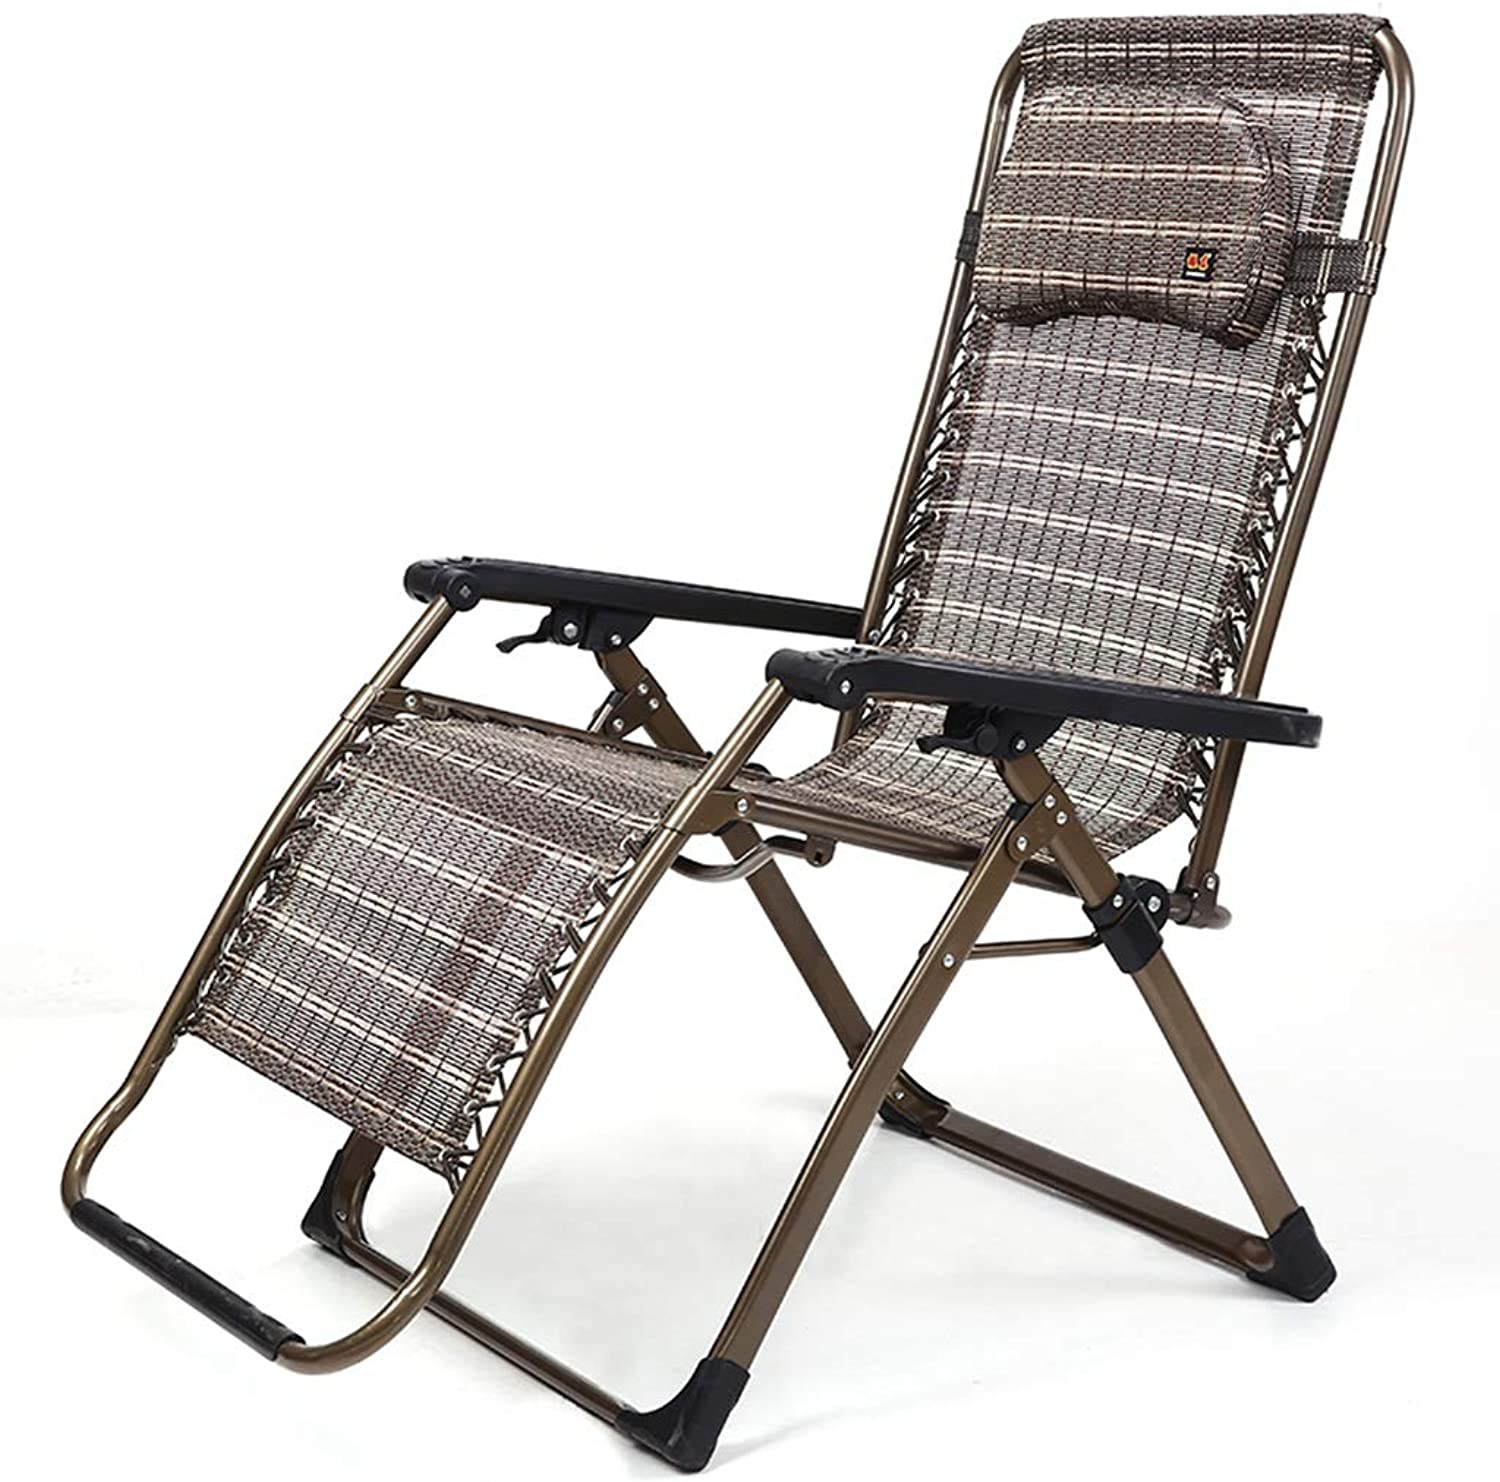 Outdoor Widen Folding Chairs with Footrest, Camping Travel Patio Reclining Chair, Textilene Fabrics, Load 210kg